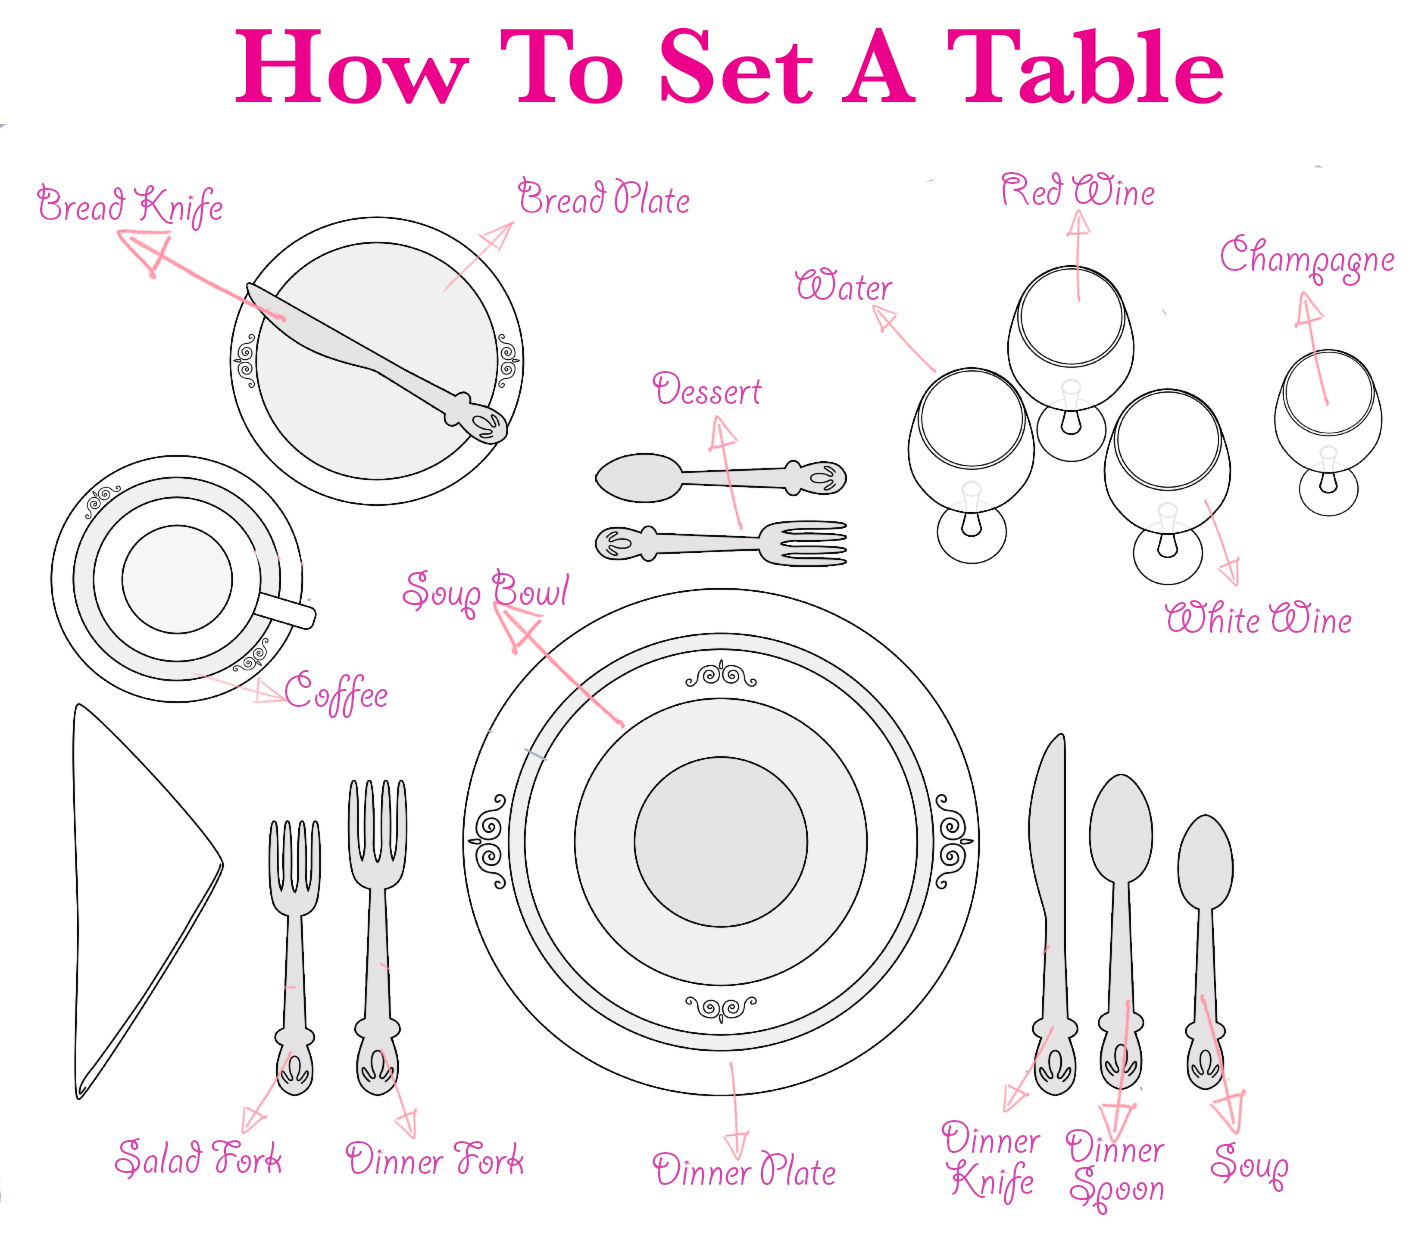 how to set a table setting ideas inspiration pinterest dinner formal shop room ideas forks knives